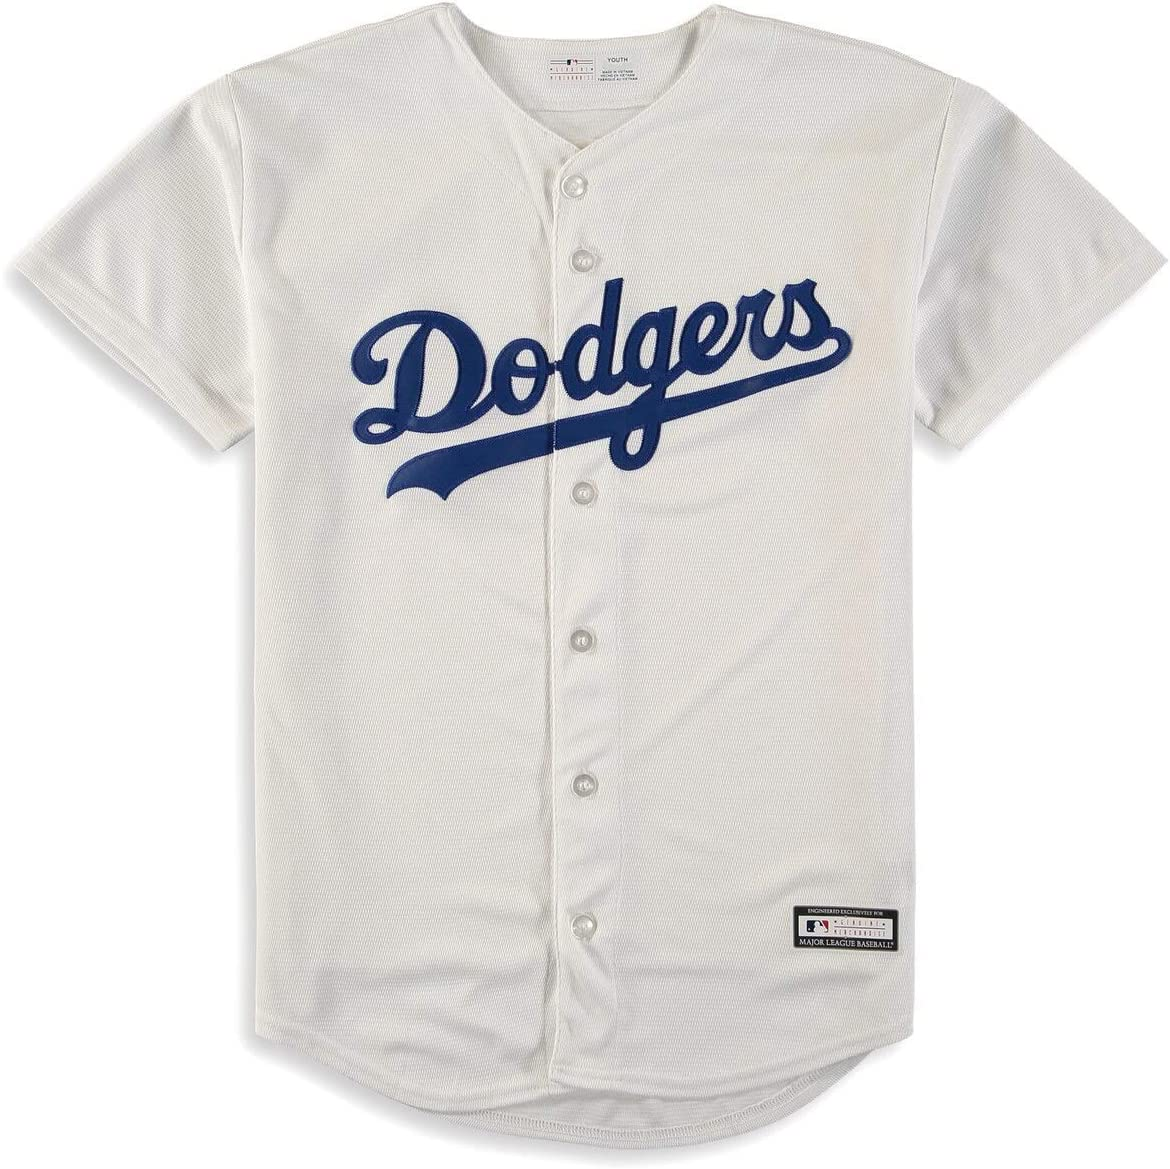 OuterStuff Los Angeles Dodgers Youth Team Home White Jersey